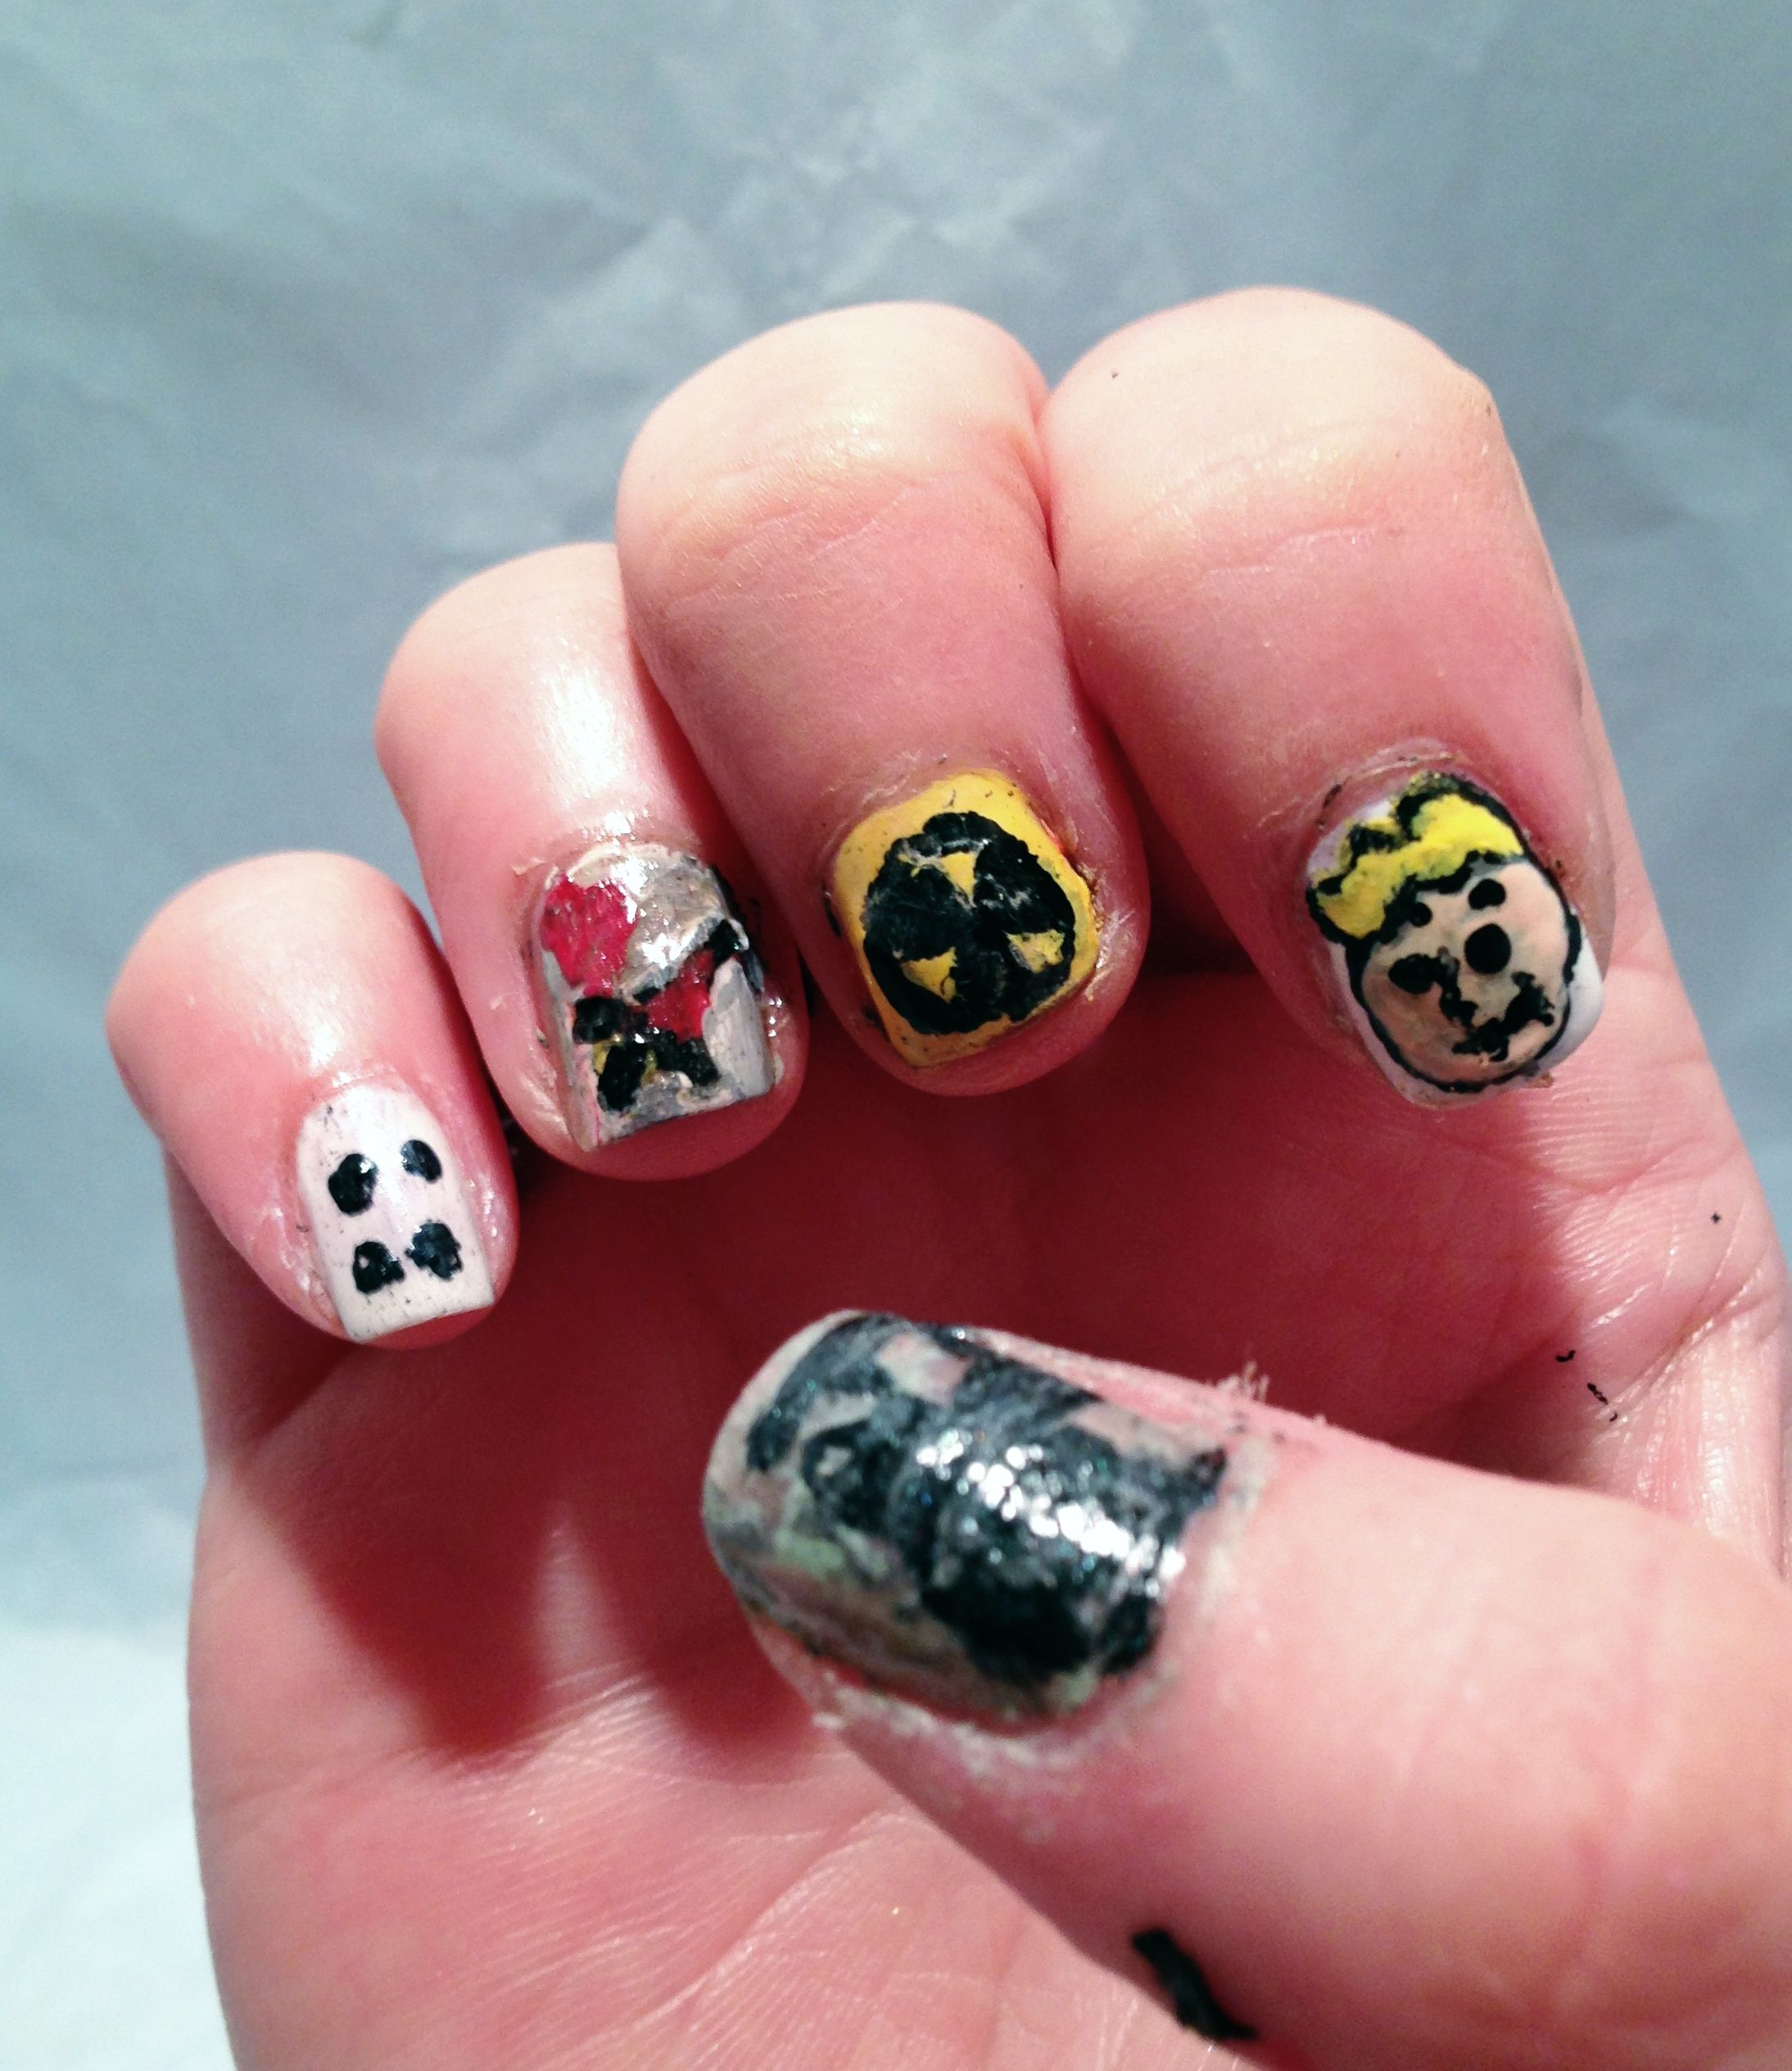 These are my \'Fallout New Vegas\' nails. The thumb says Fallout, the ...